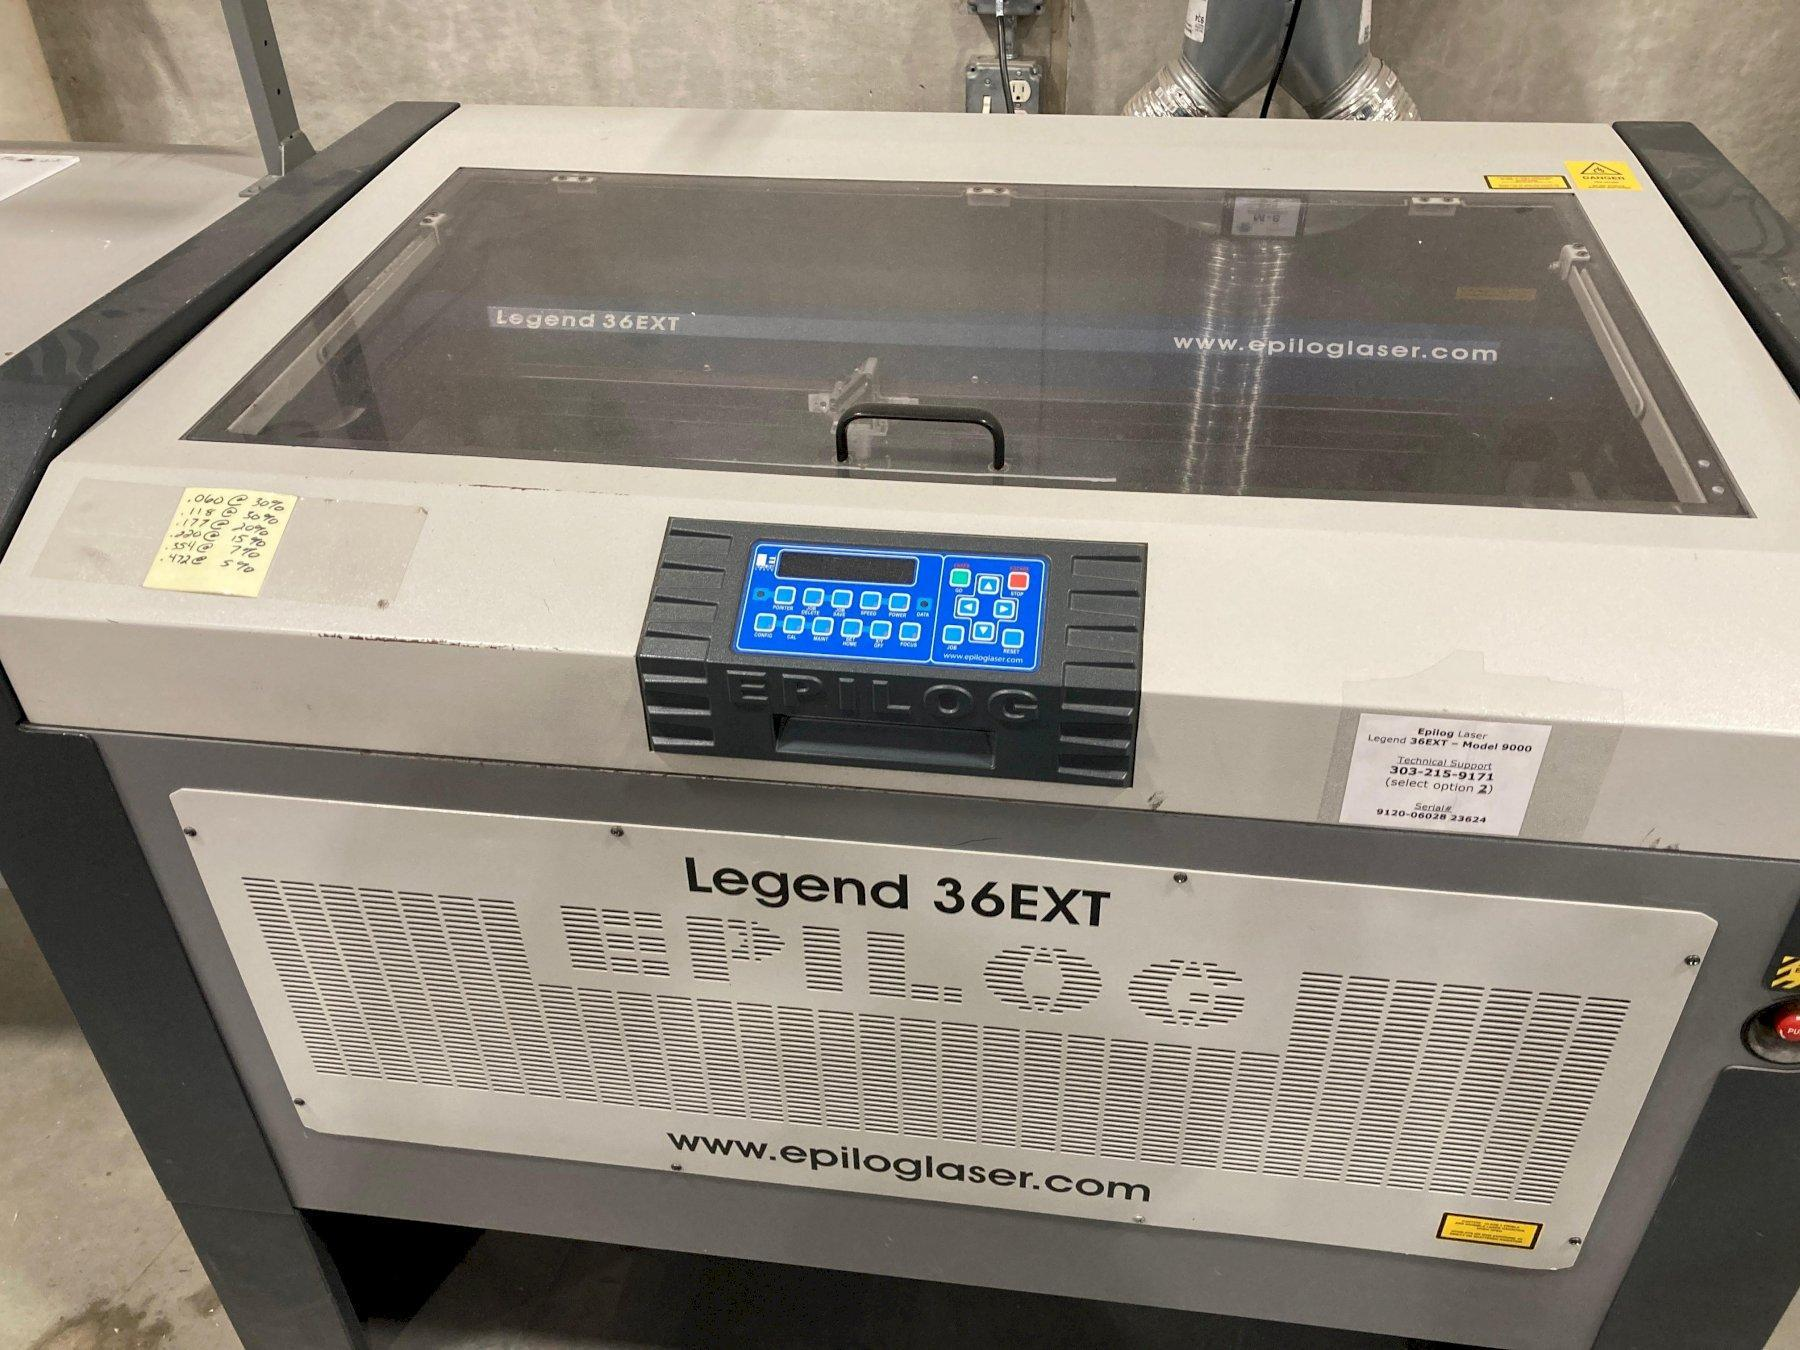 Epilog Legend 36EXT Model 9000 120W Laser engraver